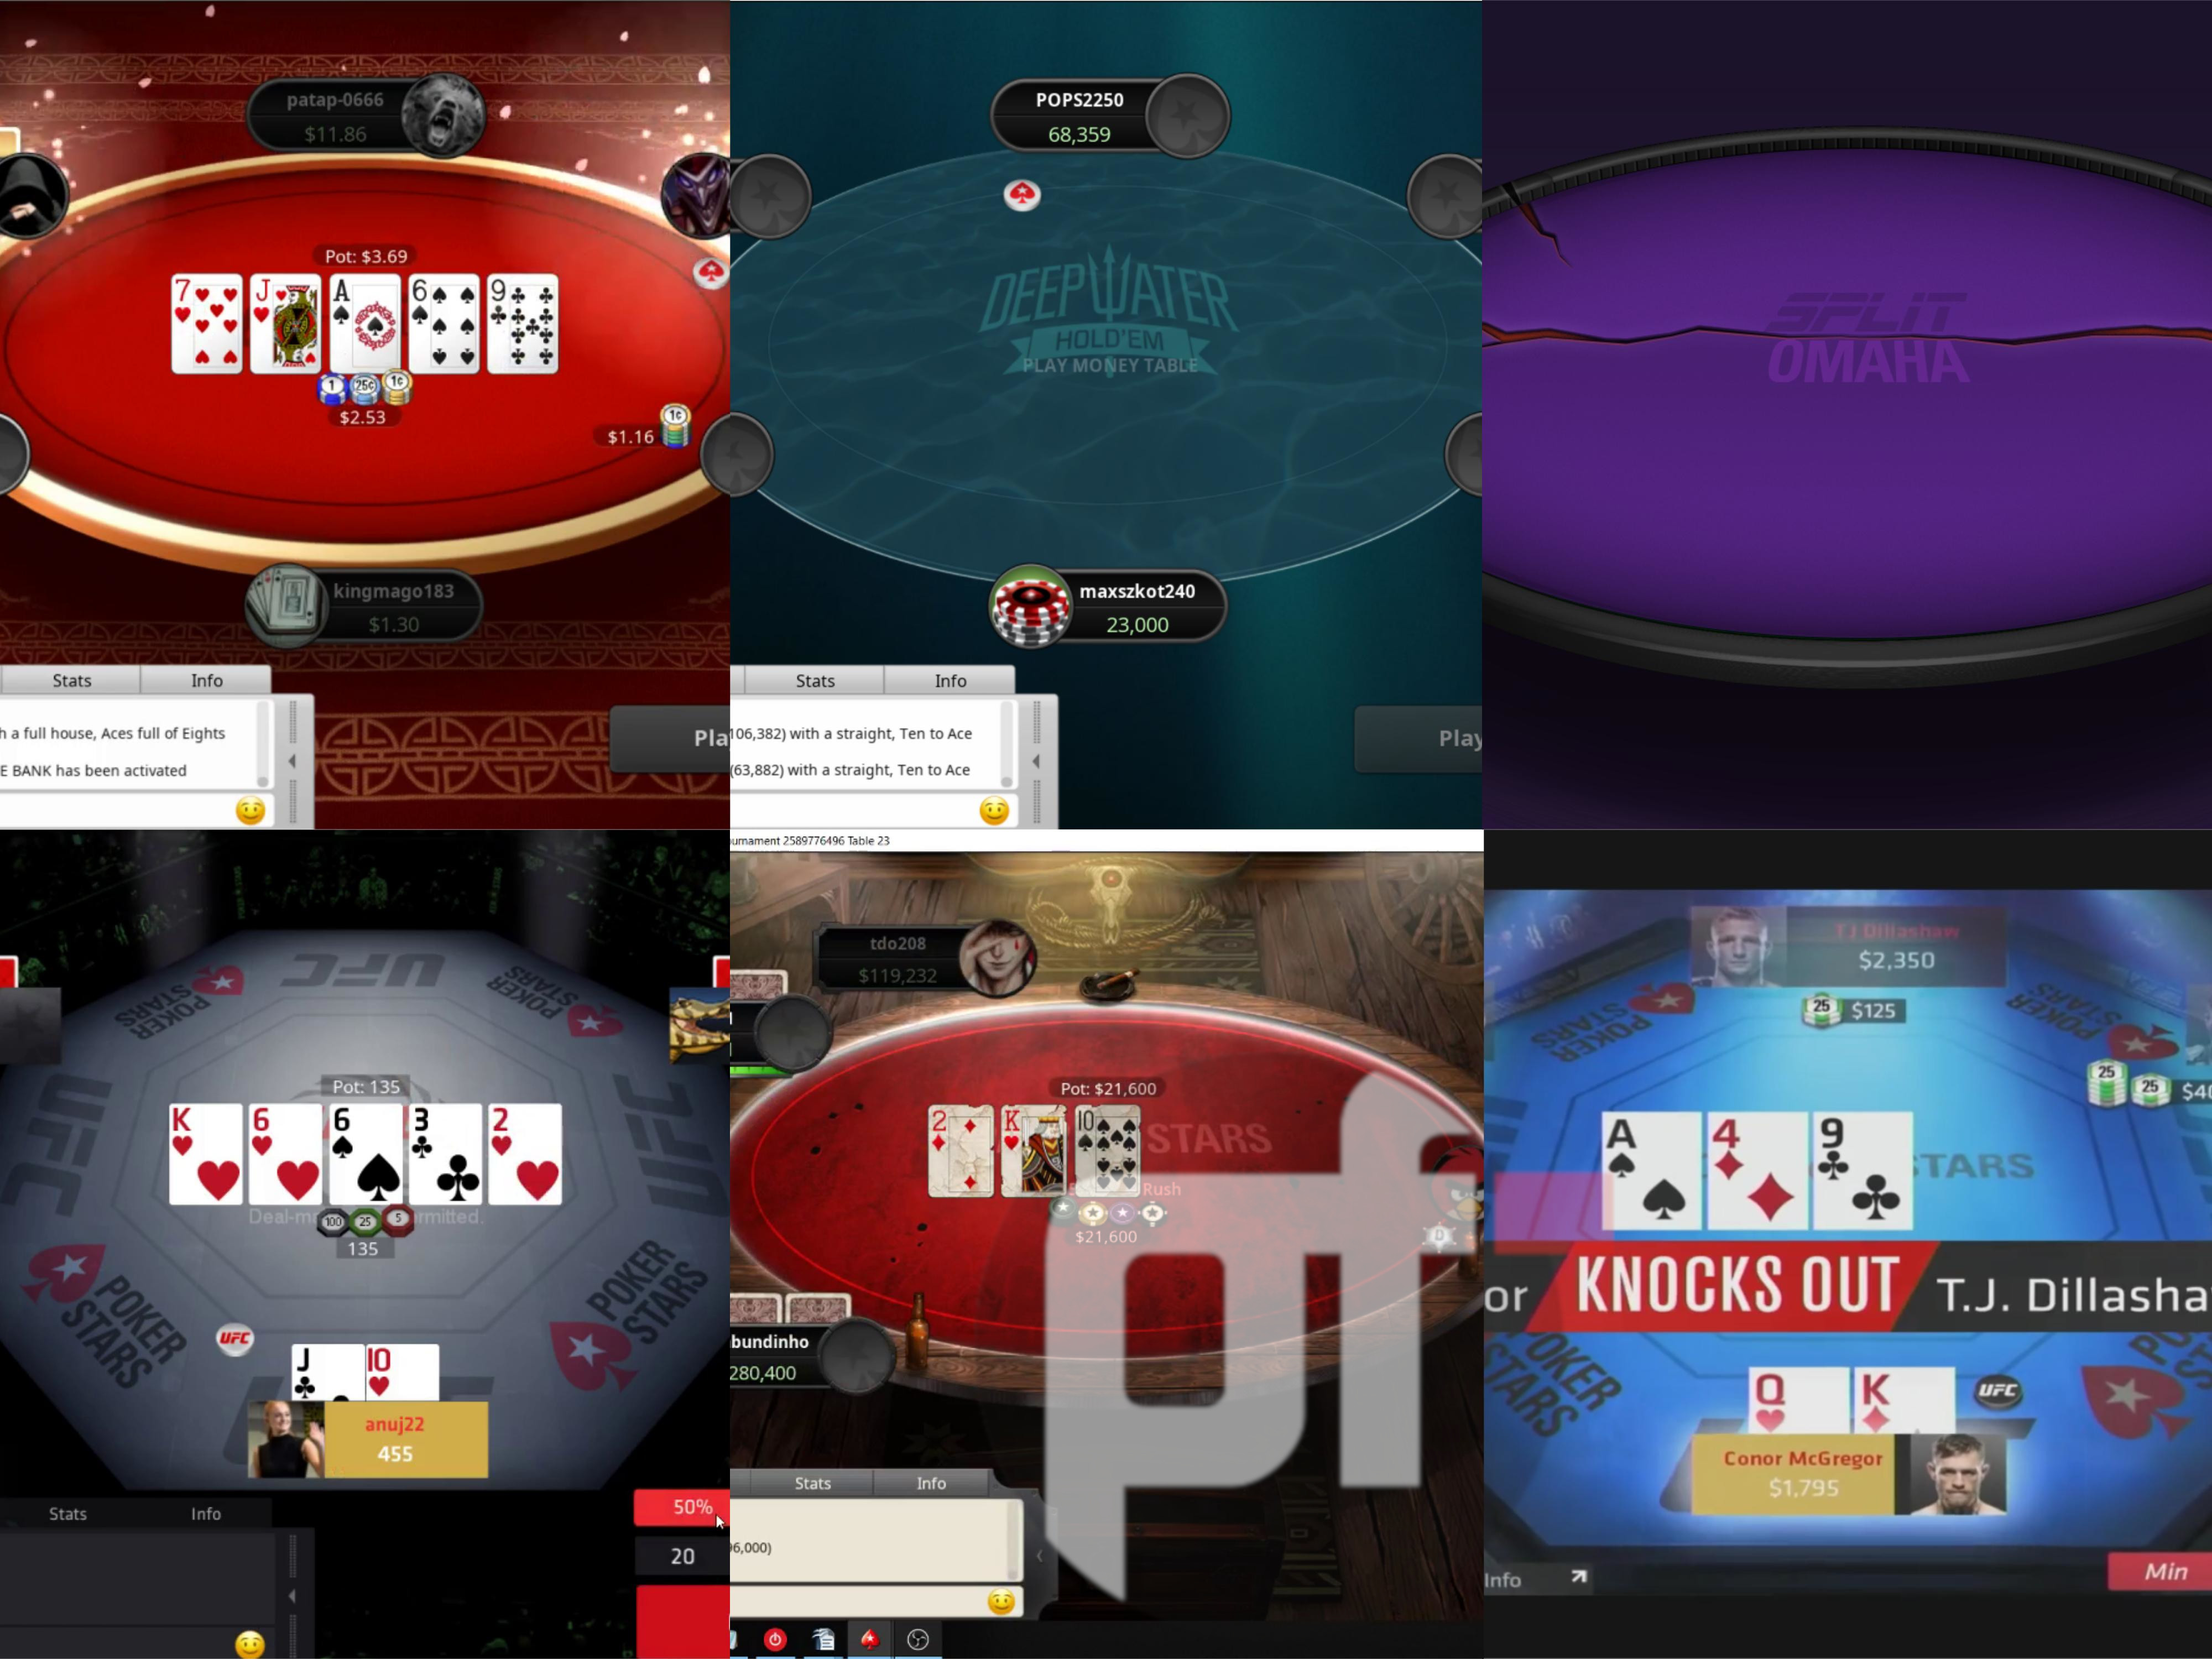 Online poker giant PokerStars has always been at the forefront of offering new poker innovations and introducing concepts that aim to attract new players to…